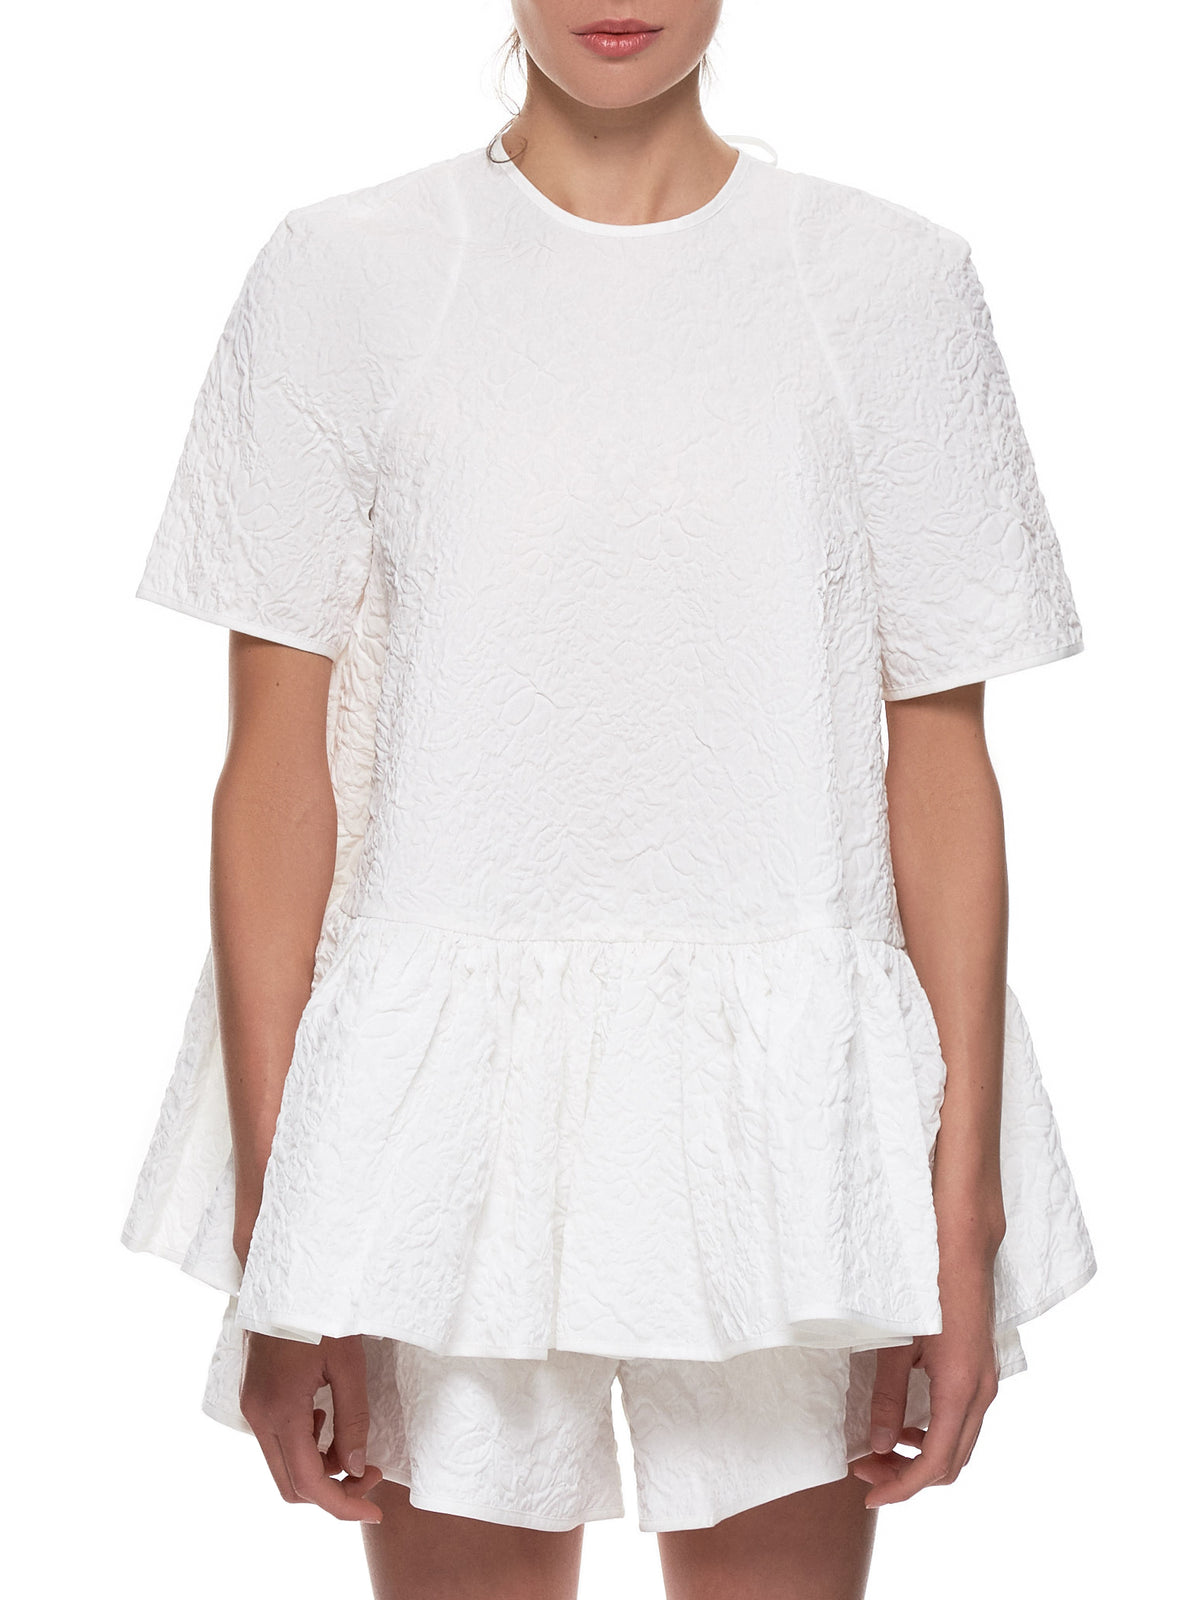 'Susi Blouse' (0057-SUSI-WHITE)